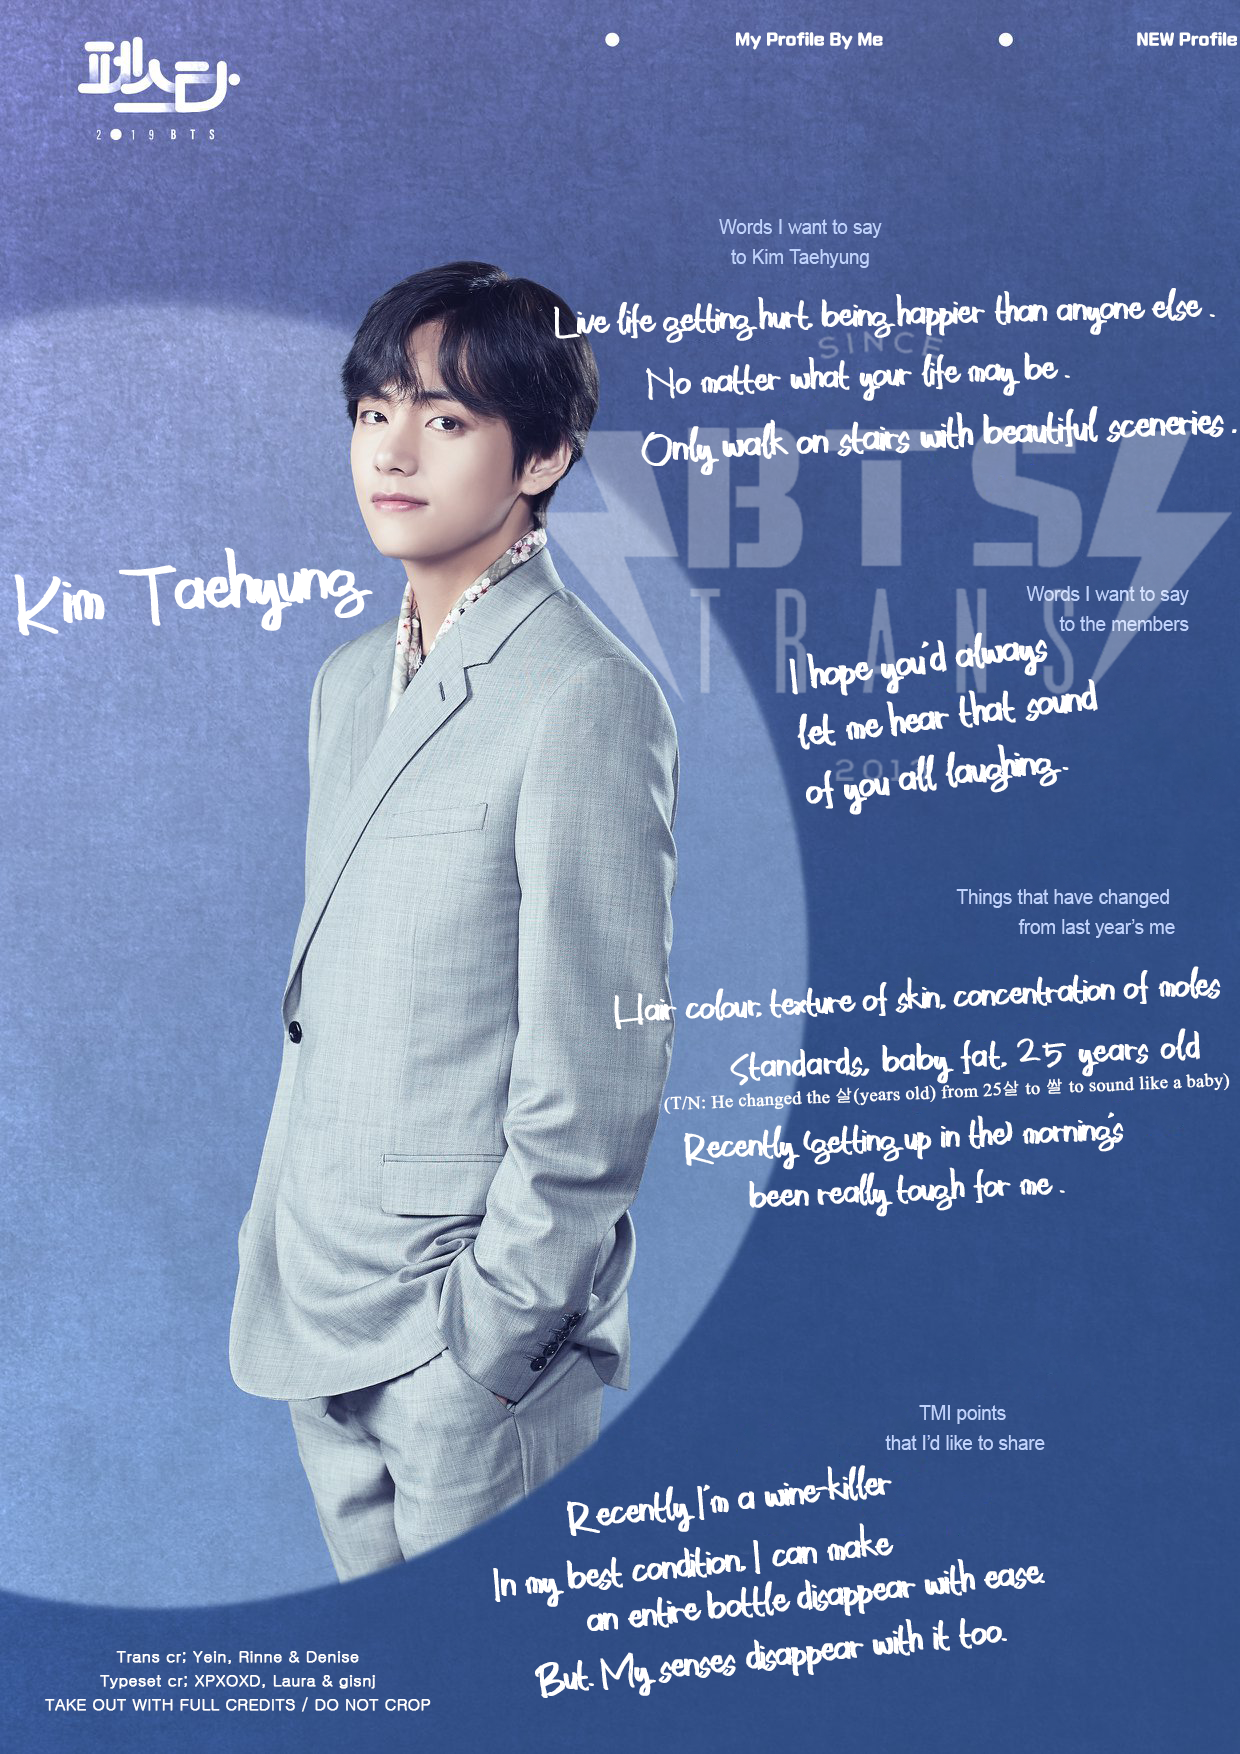 Page 11 - Taehyung _ New Profile.png